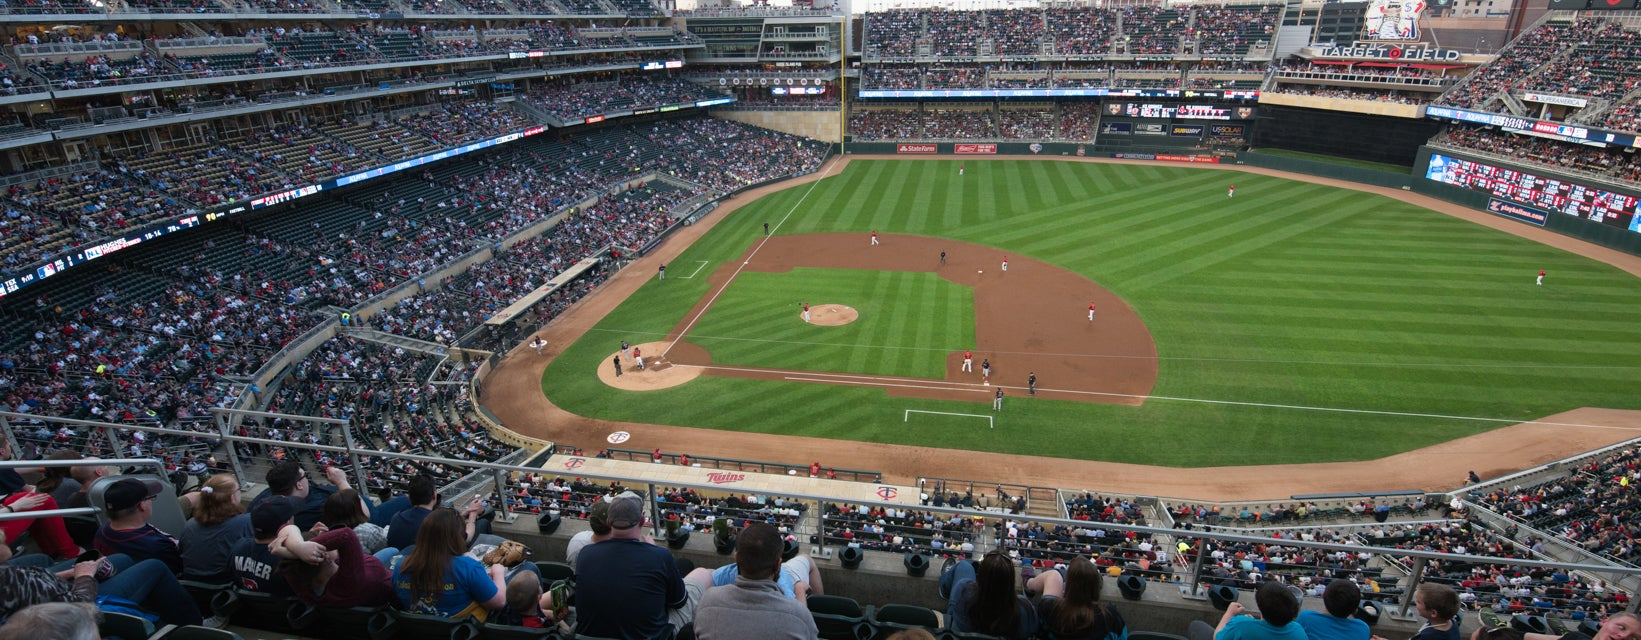 Seat view from Home Plate Terrace